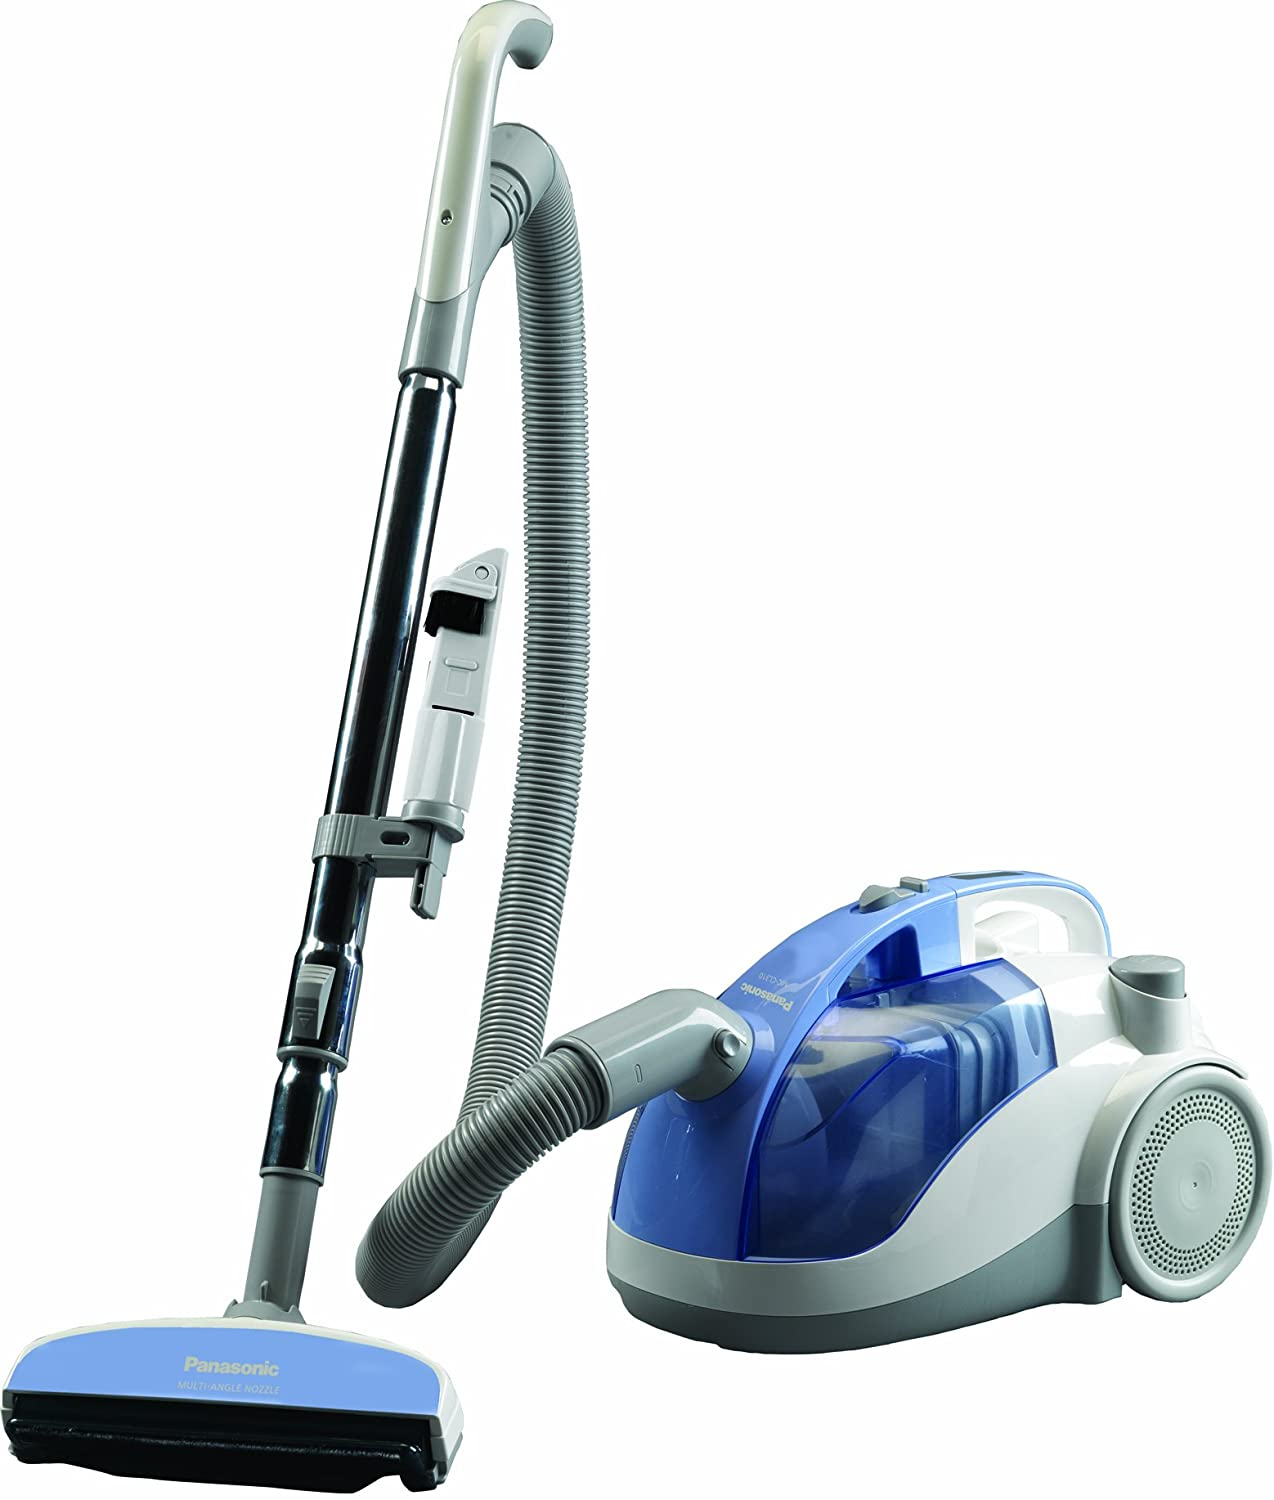 What Is The Best Inexpensive Vacuum Cleaner